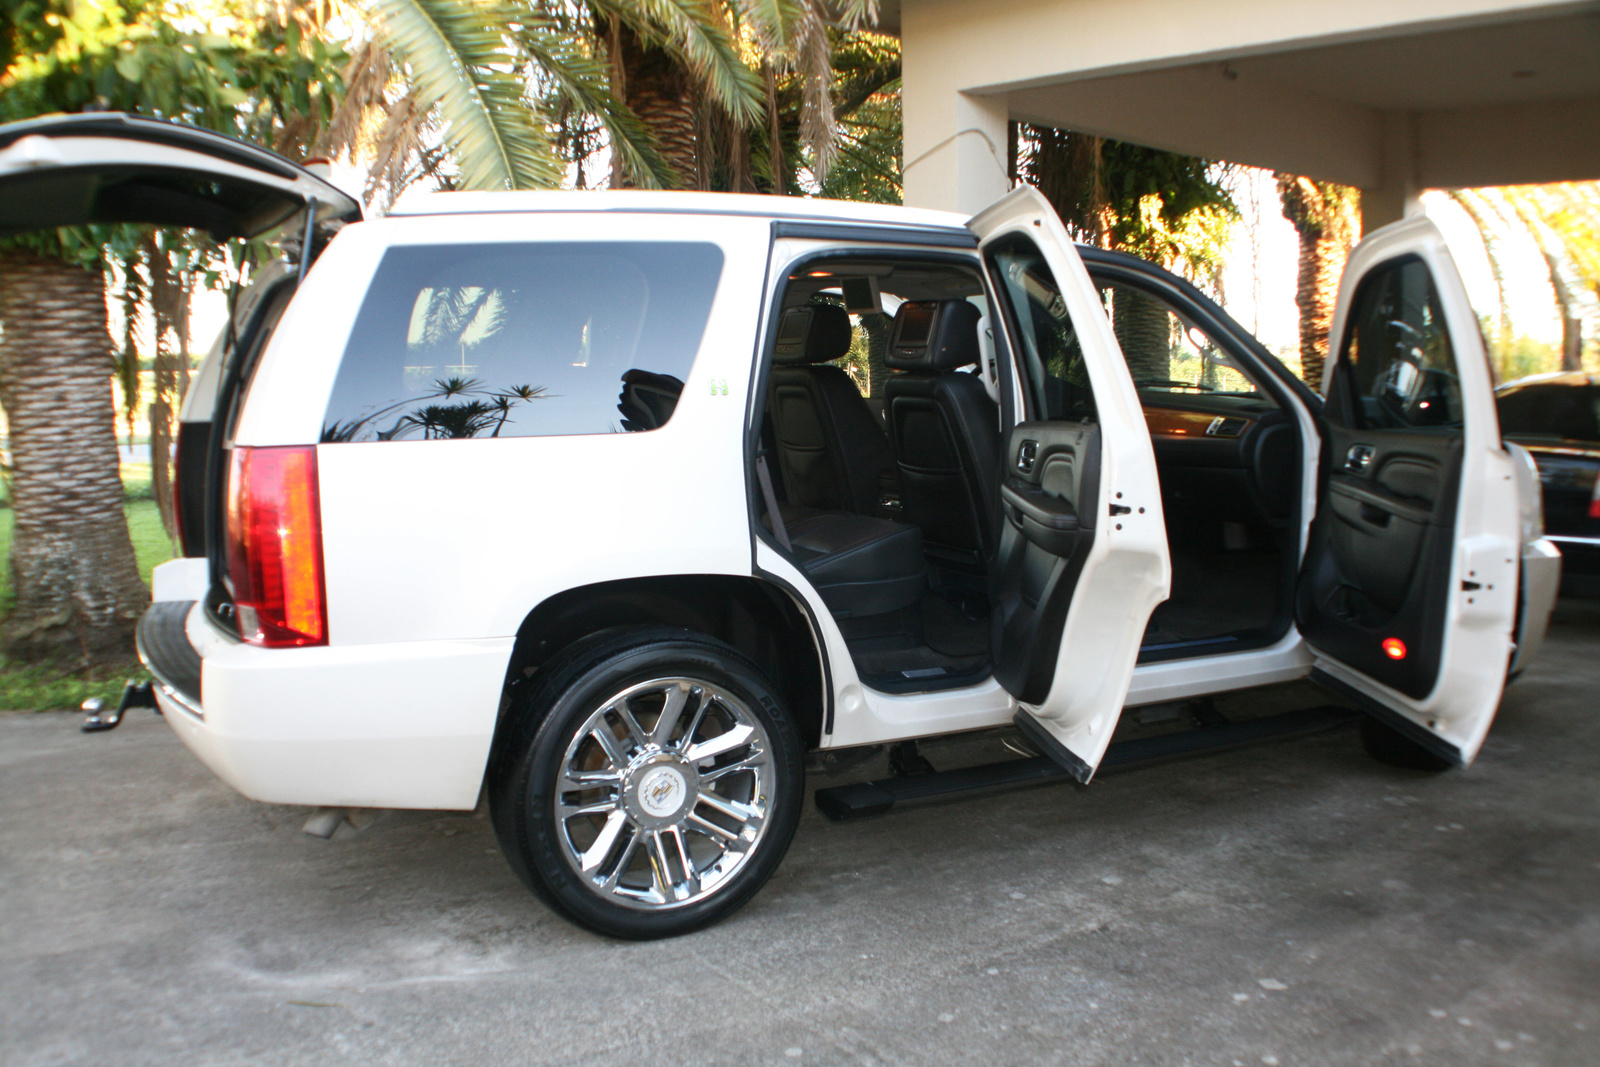 2012 Cadillac Escalade Platinum For Sale >> 2012 Cadillac Escalade Overview Cargurus